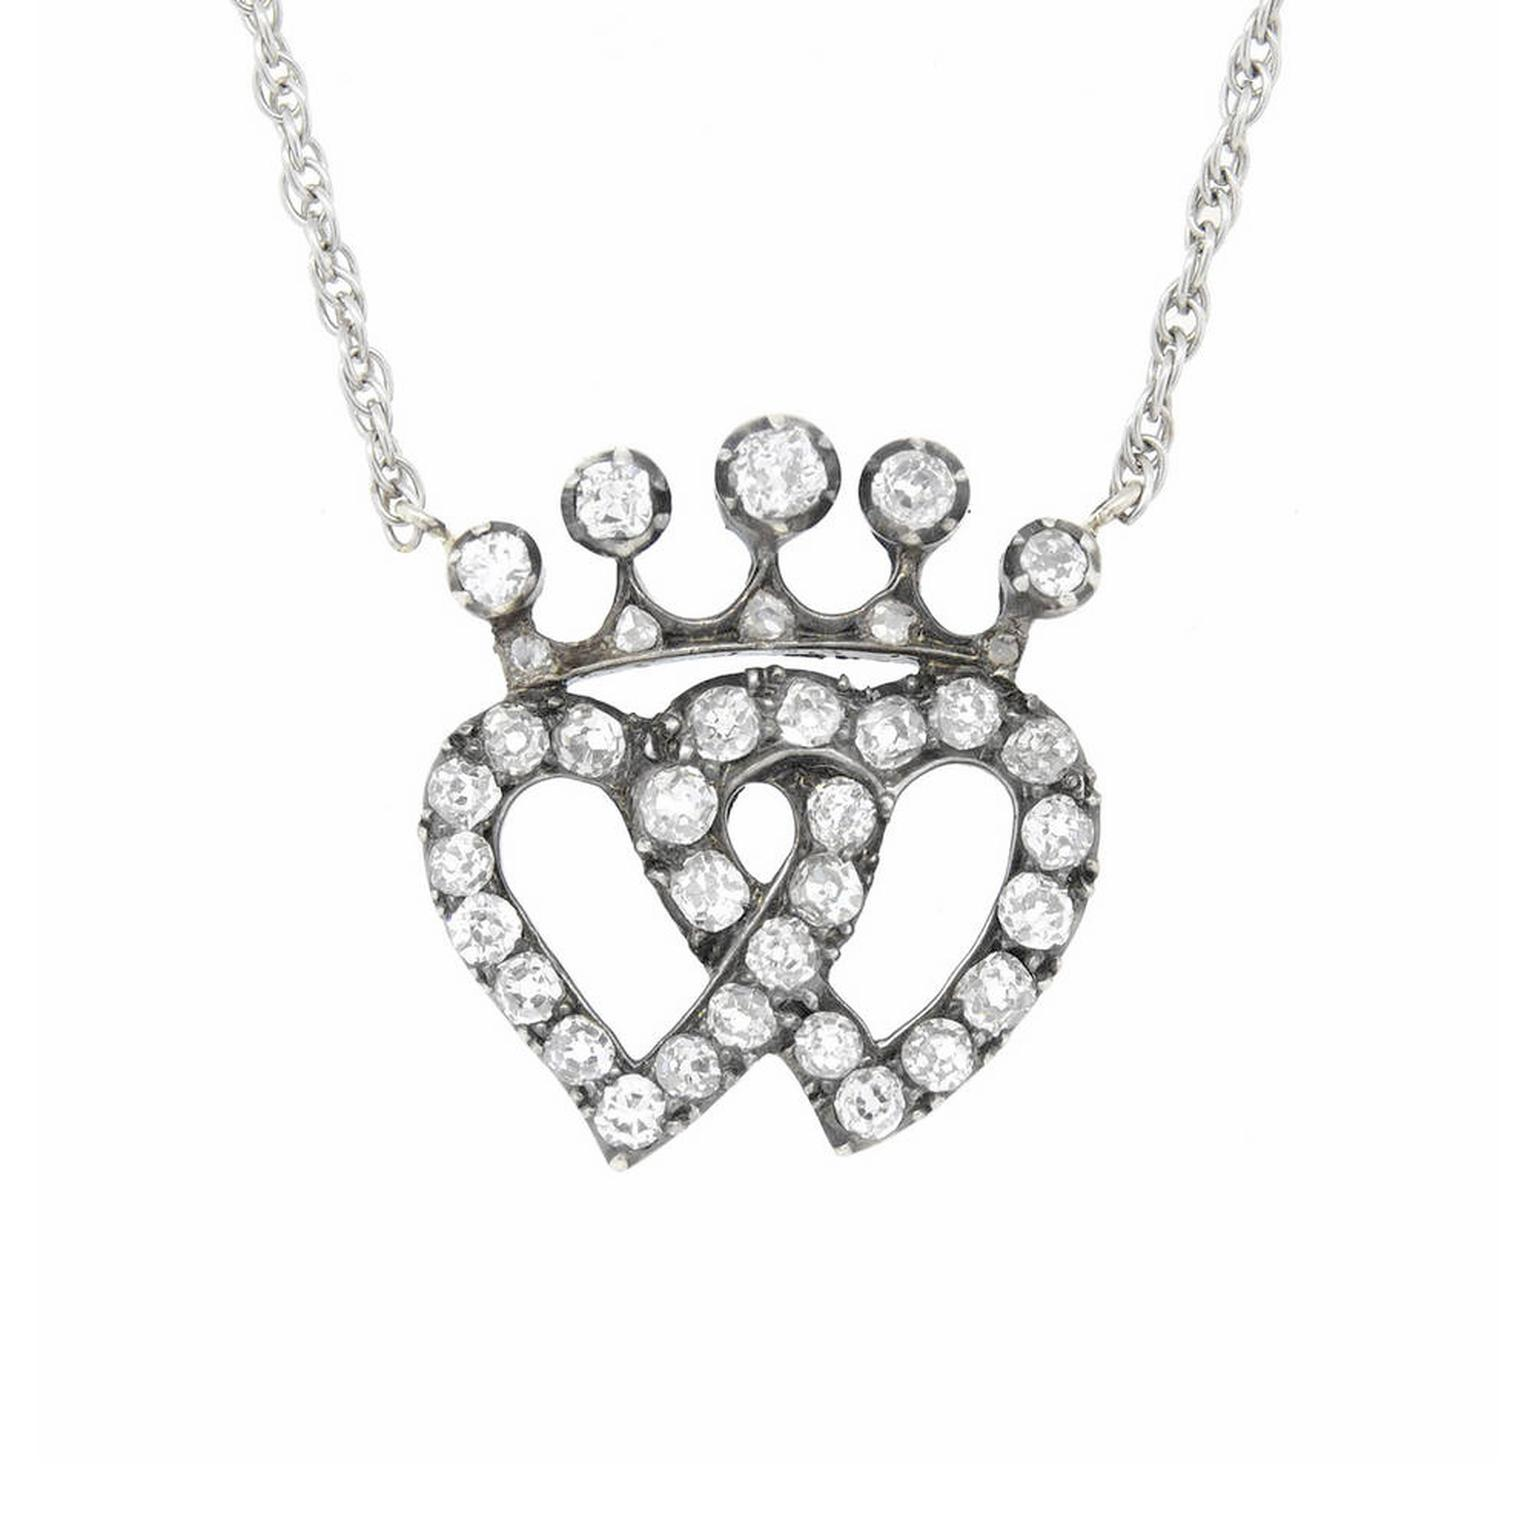 A Brandt diamond double heart necklace